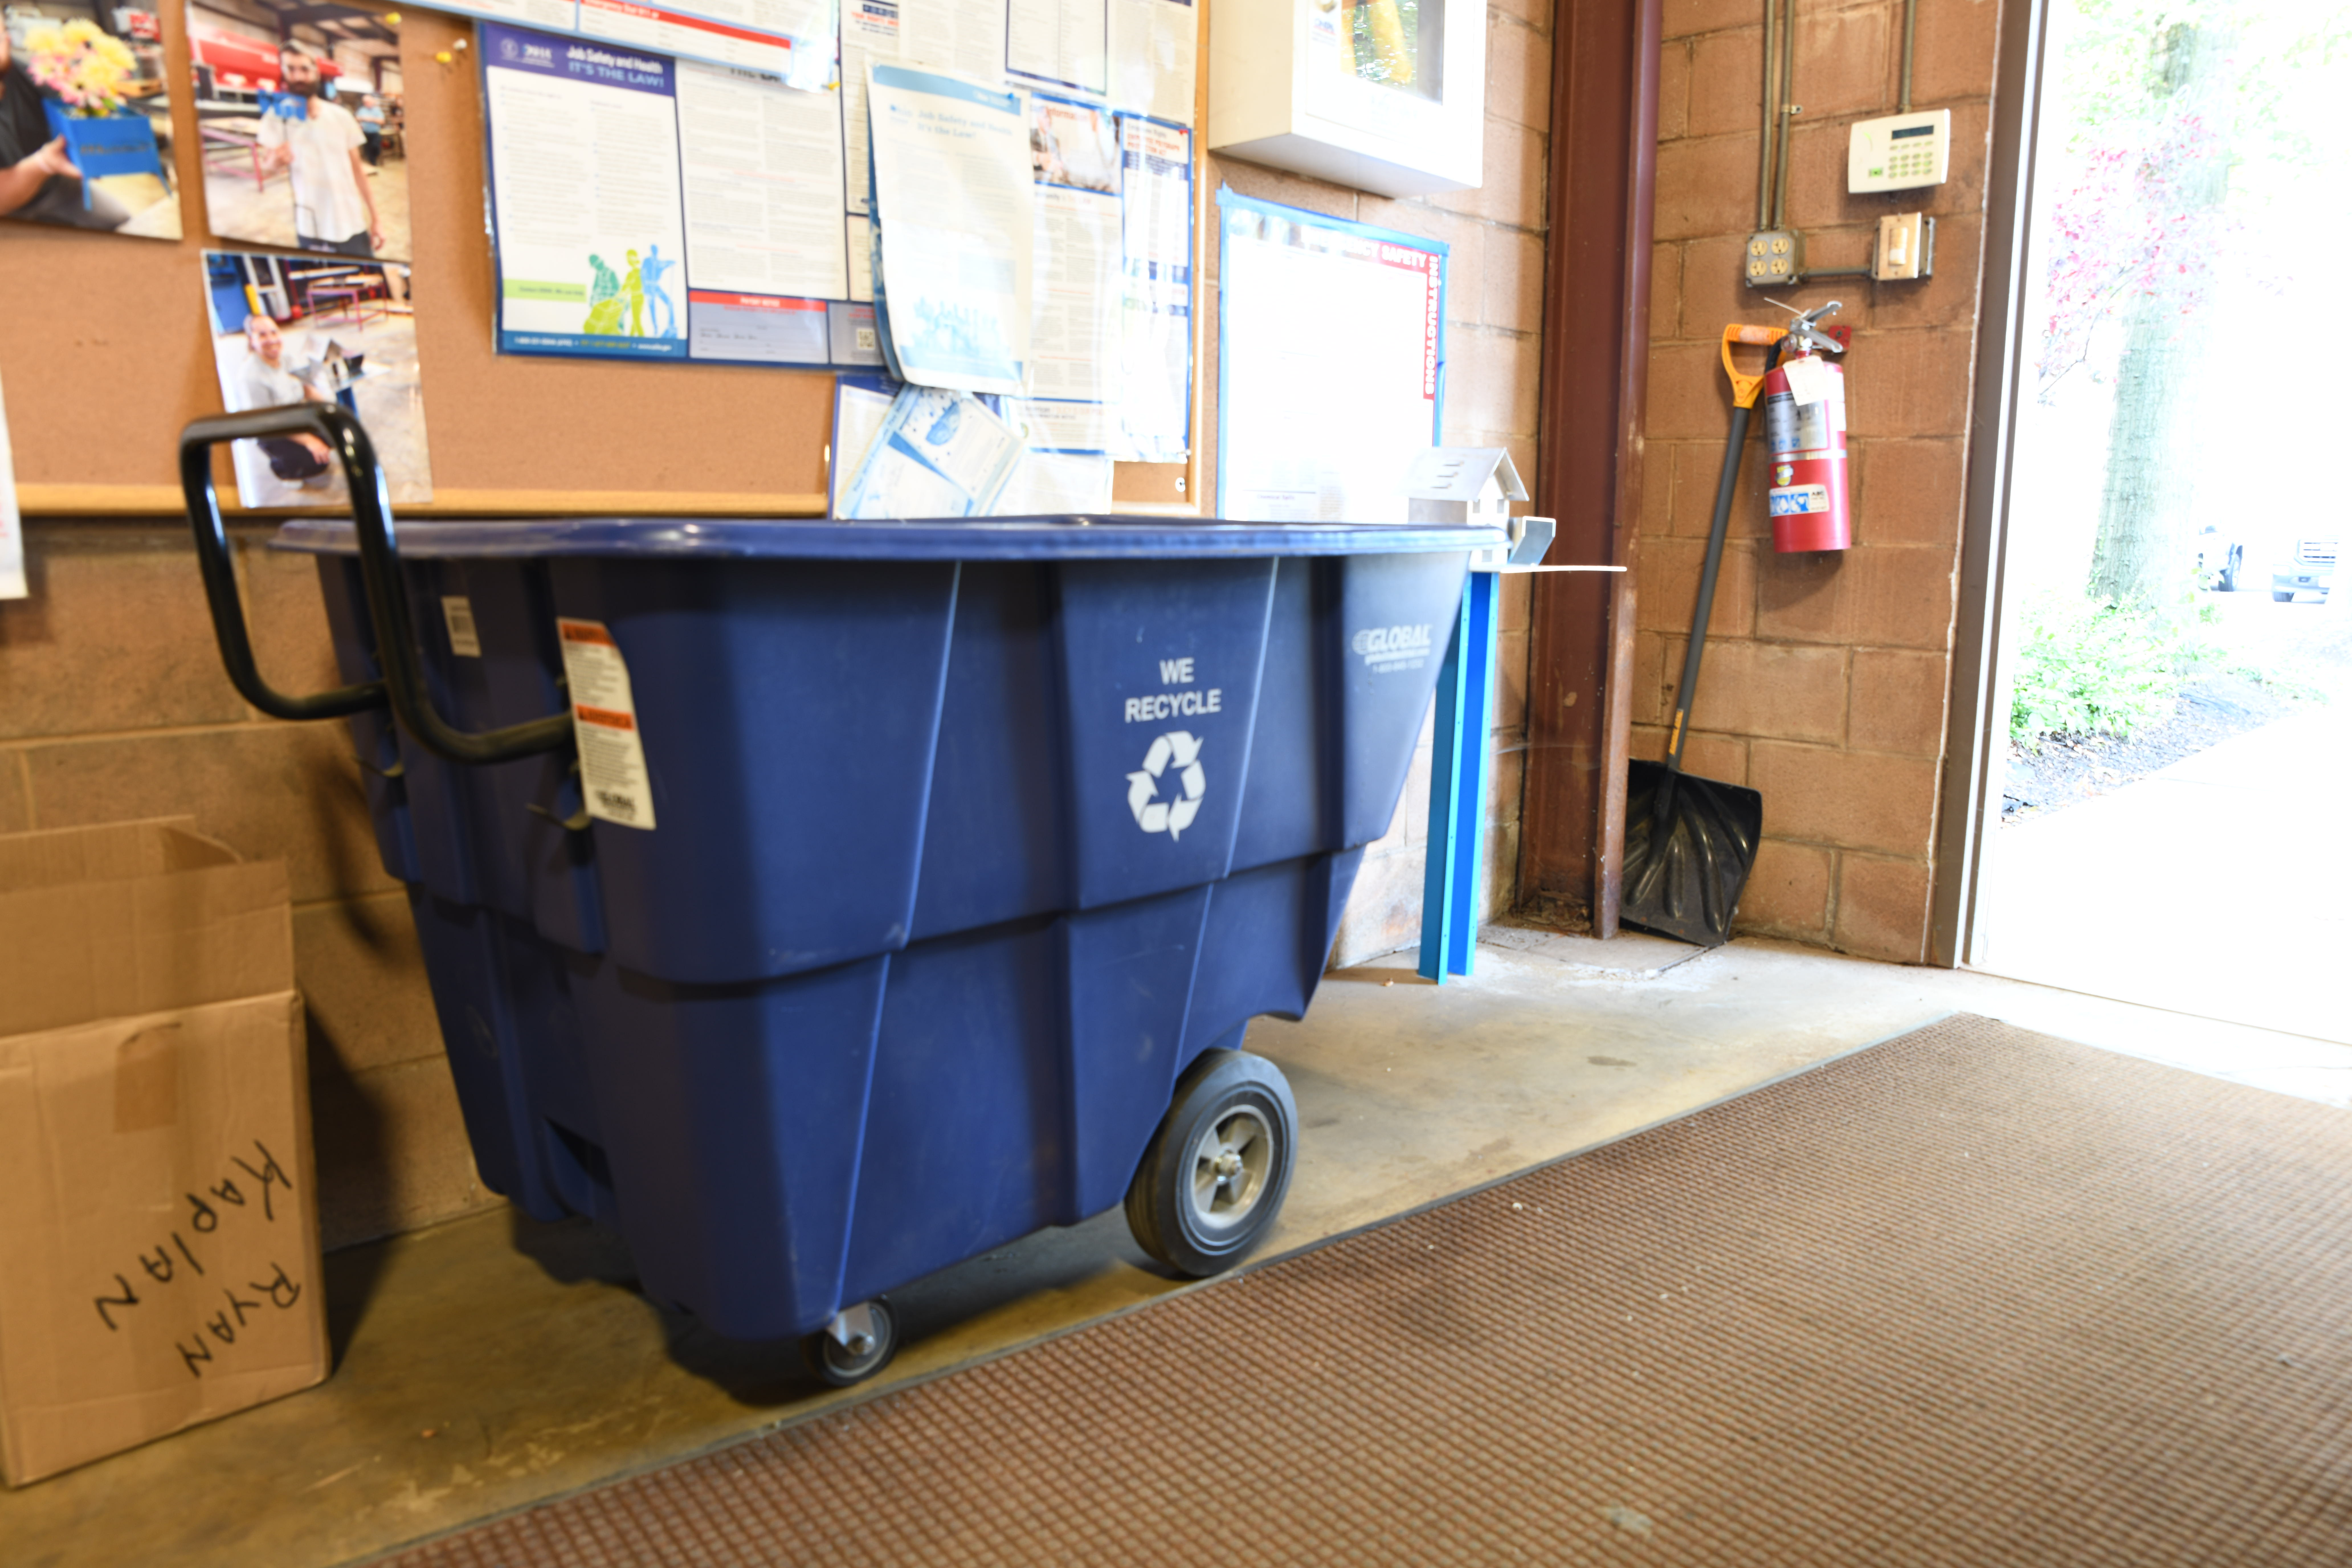 We have recycling containers like this in all of our processing, shipping and manufacturing facilities to help recycle extra paper, plastic and other materials.